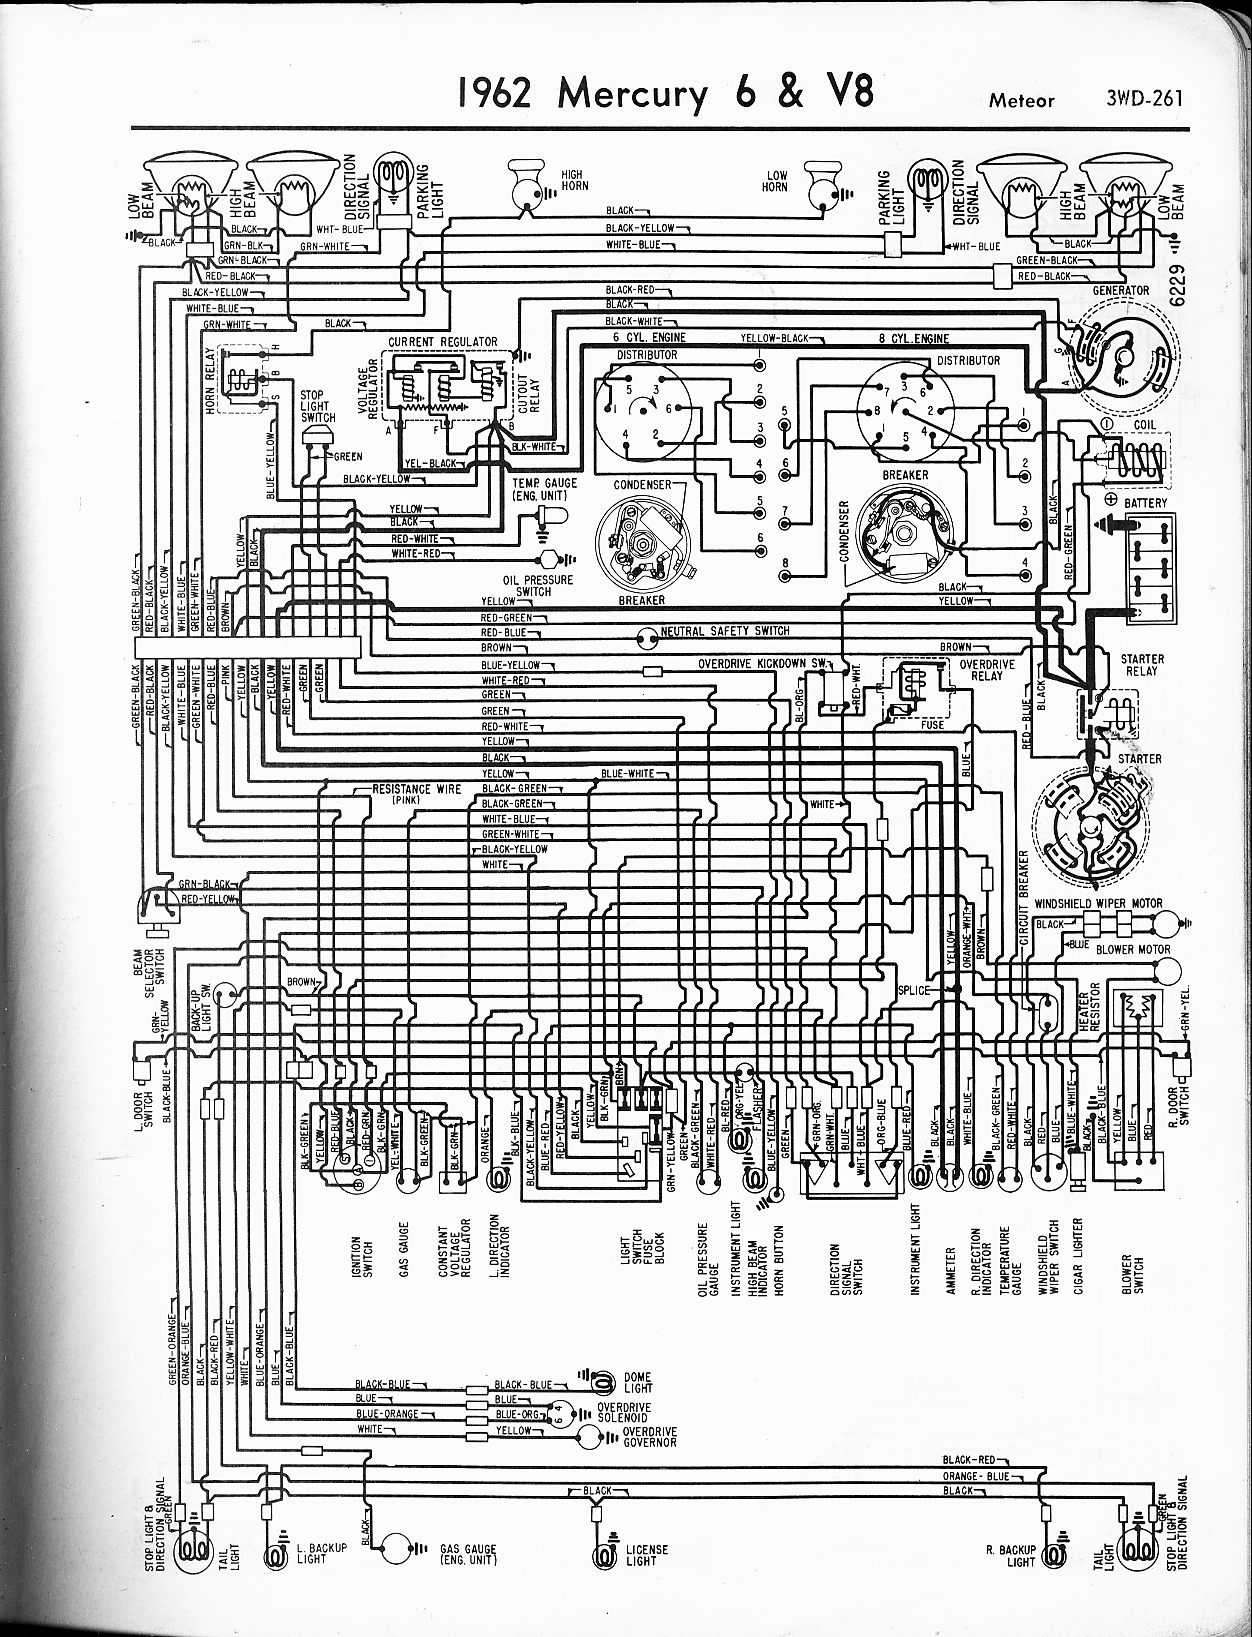 1964 mercury wiring diagram 1964 get free image about wiring diagram. Black Bedroom Furniture Sets. Home Design Ideas